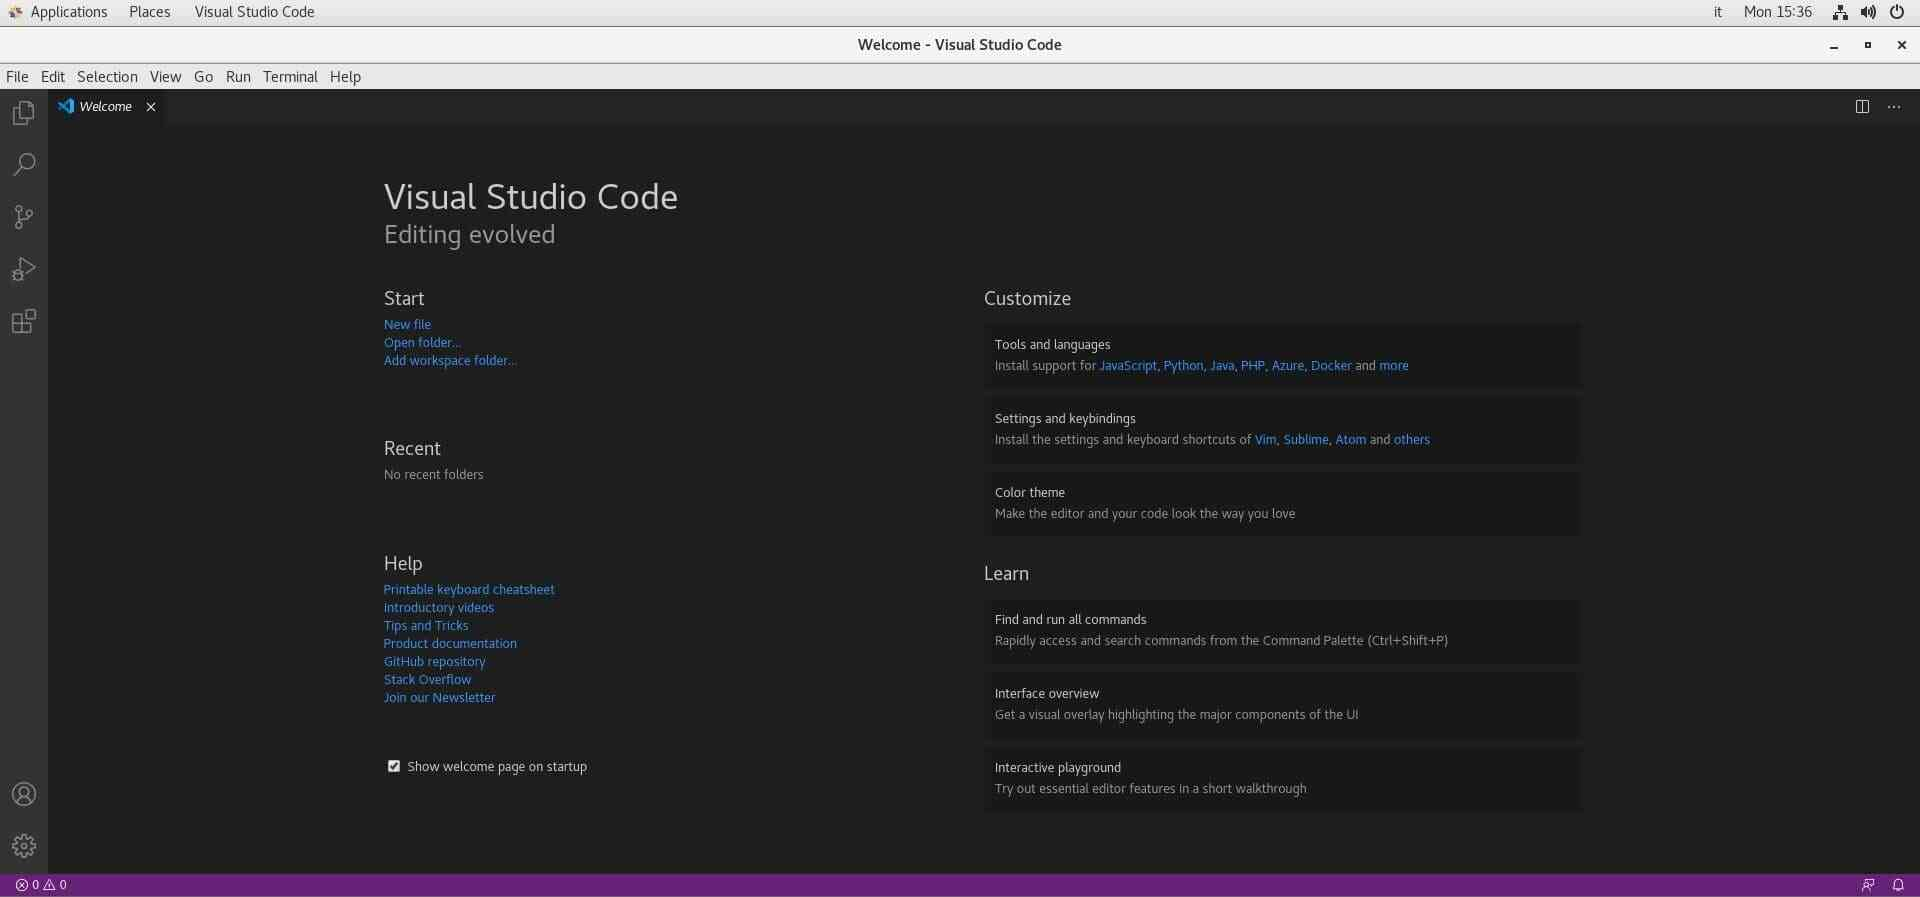 How to Install Visual Studio Code on CentOS